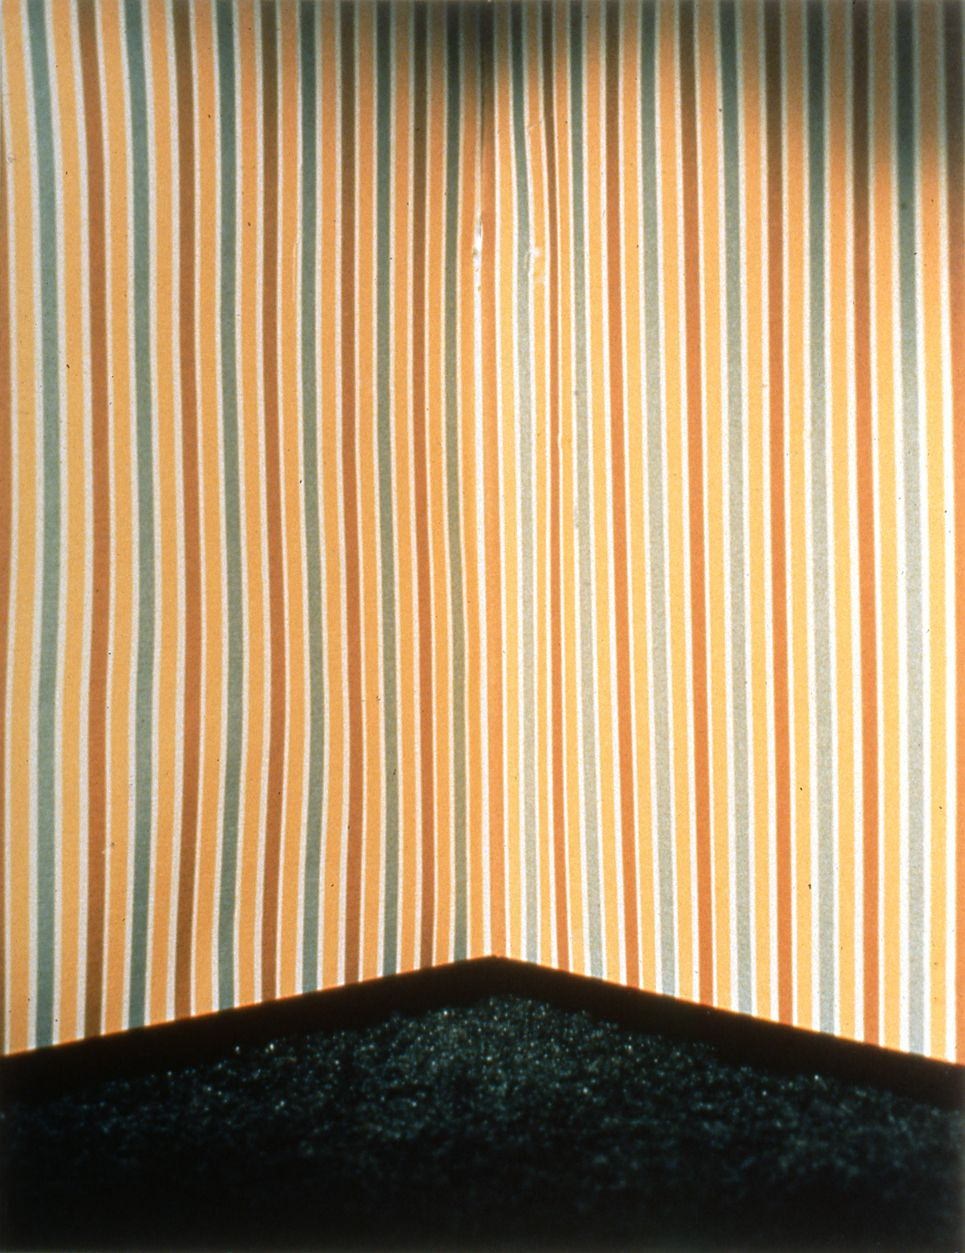 Julie Becker, Interior Corner #8, 1993, C-print, 35 1/2 x 27 1/2 inches